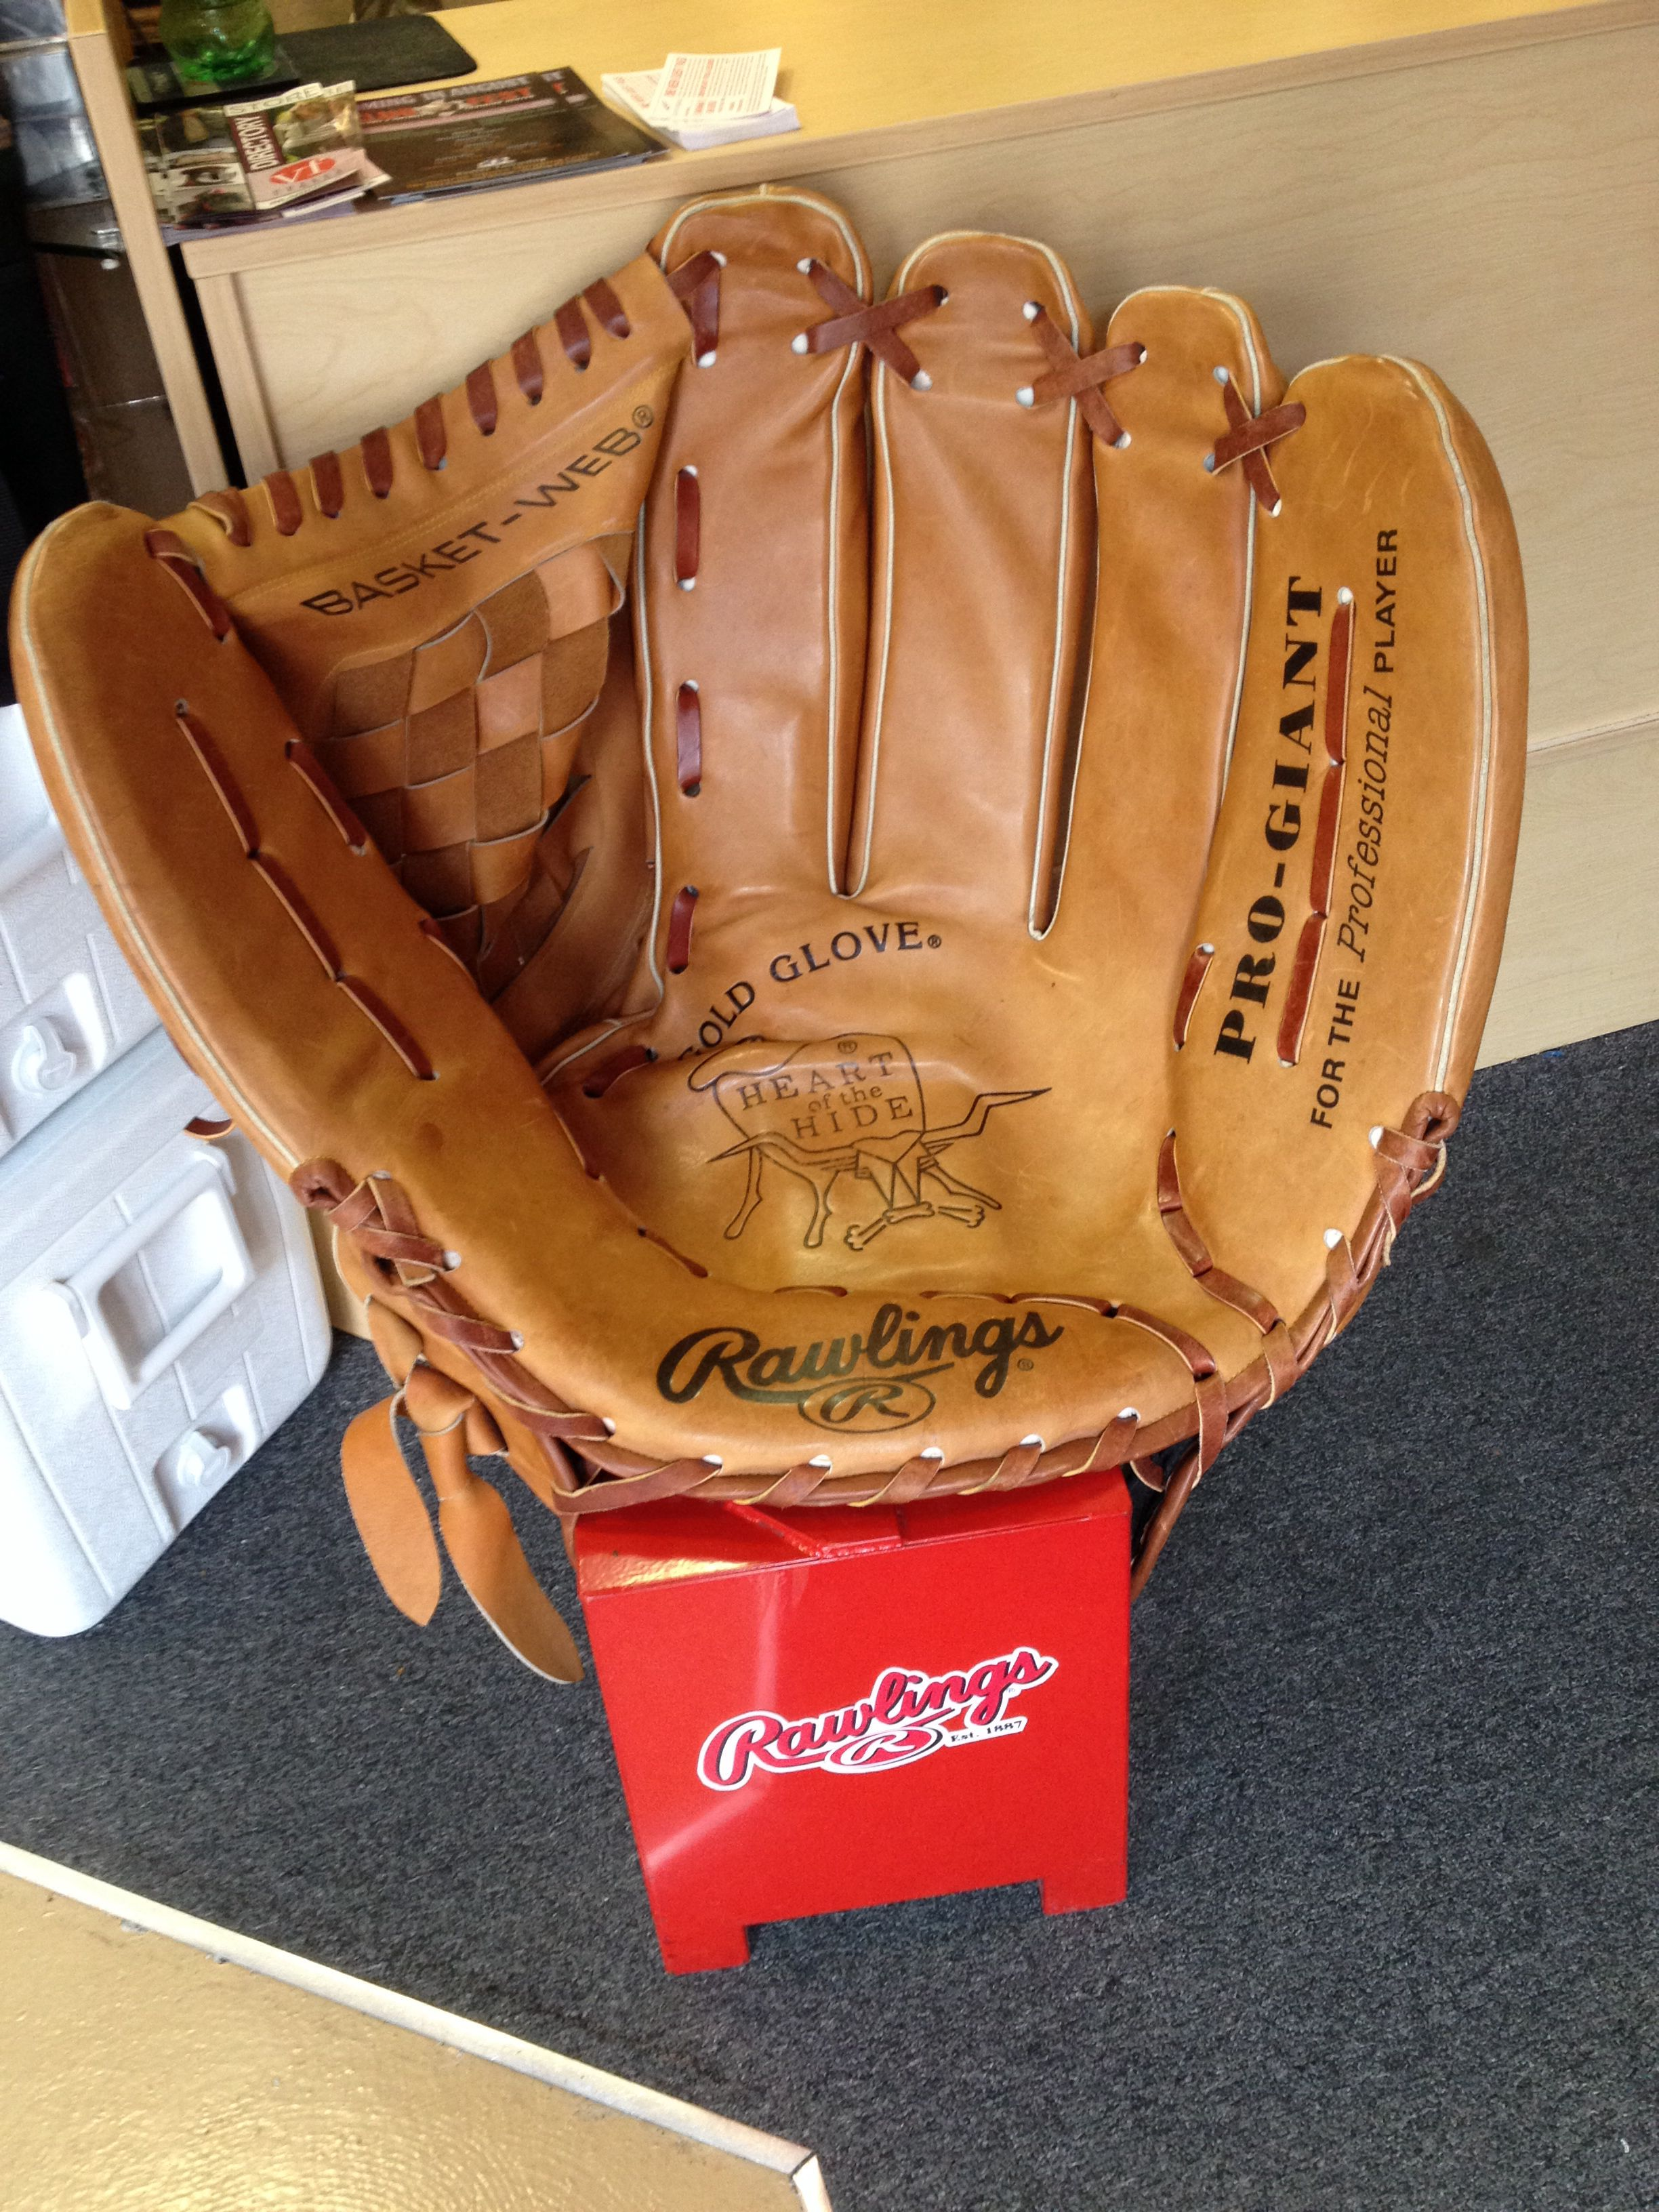 Kids Baseball Chair This Is A Cool Baseball Glove Chair From The Rawlings